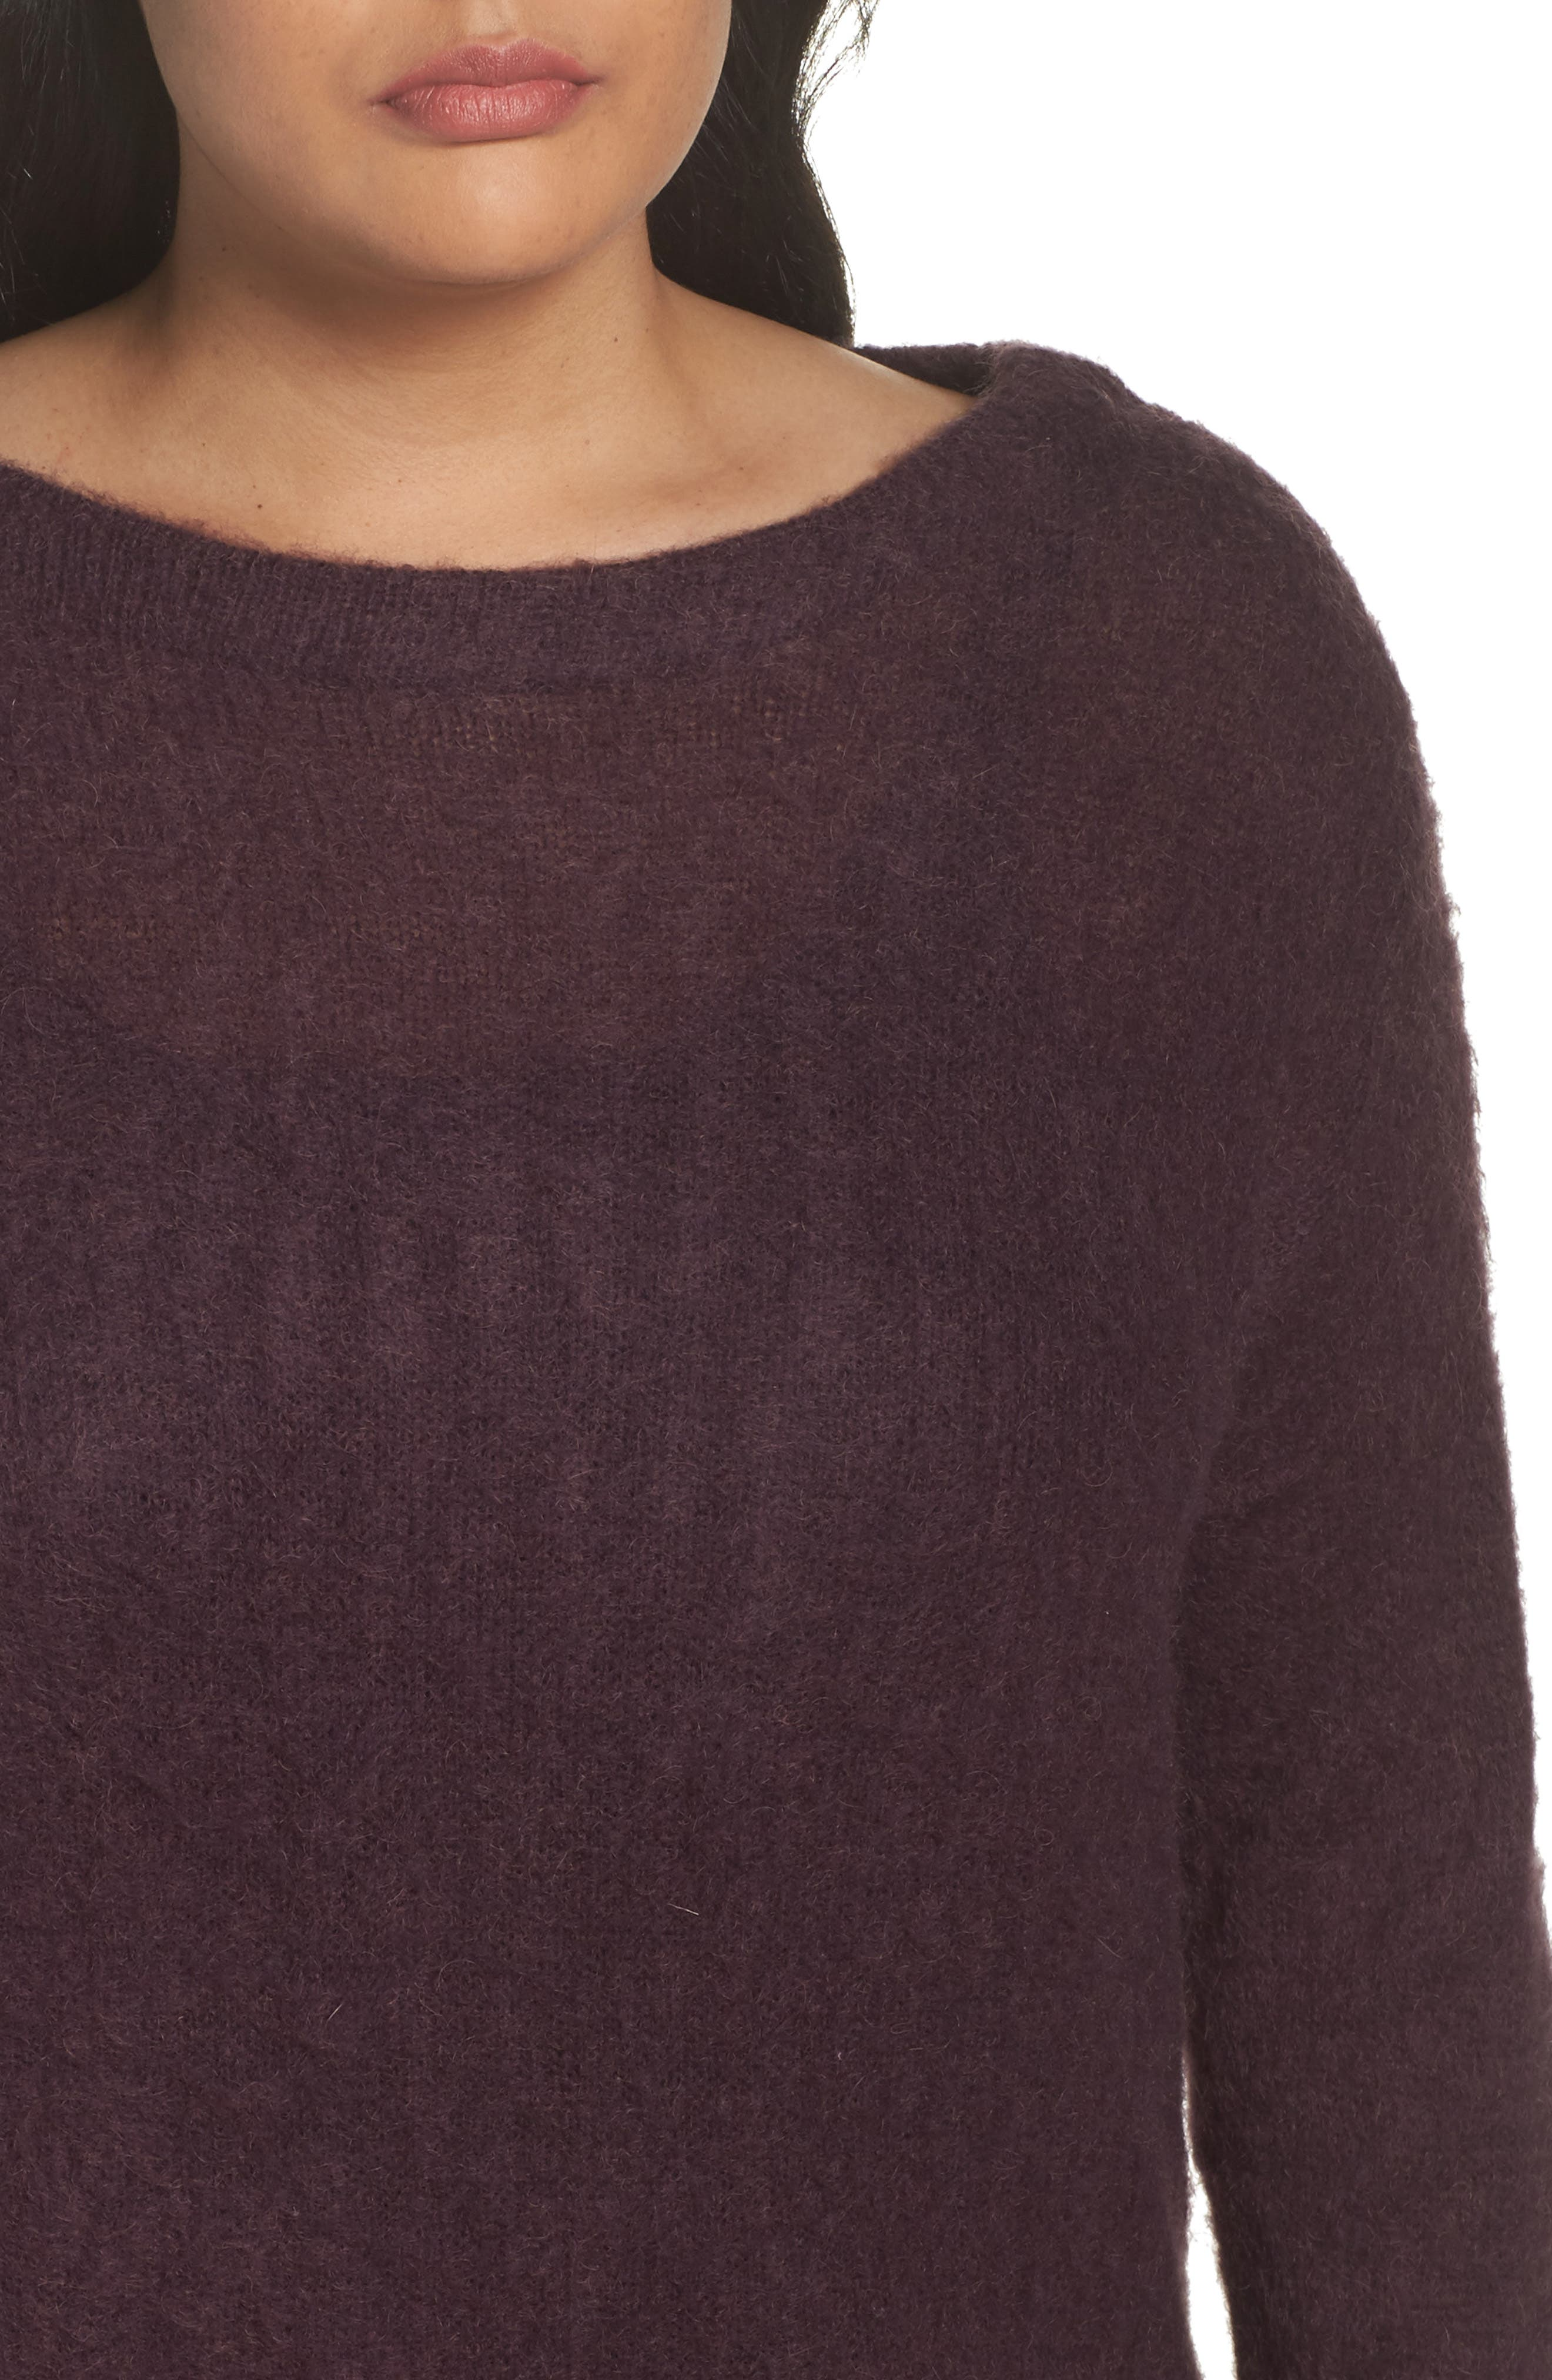 Long Sleeve Brushed Sweater,                             Alternate thumbnail 4, color,                             501